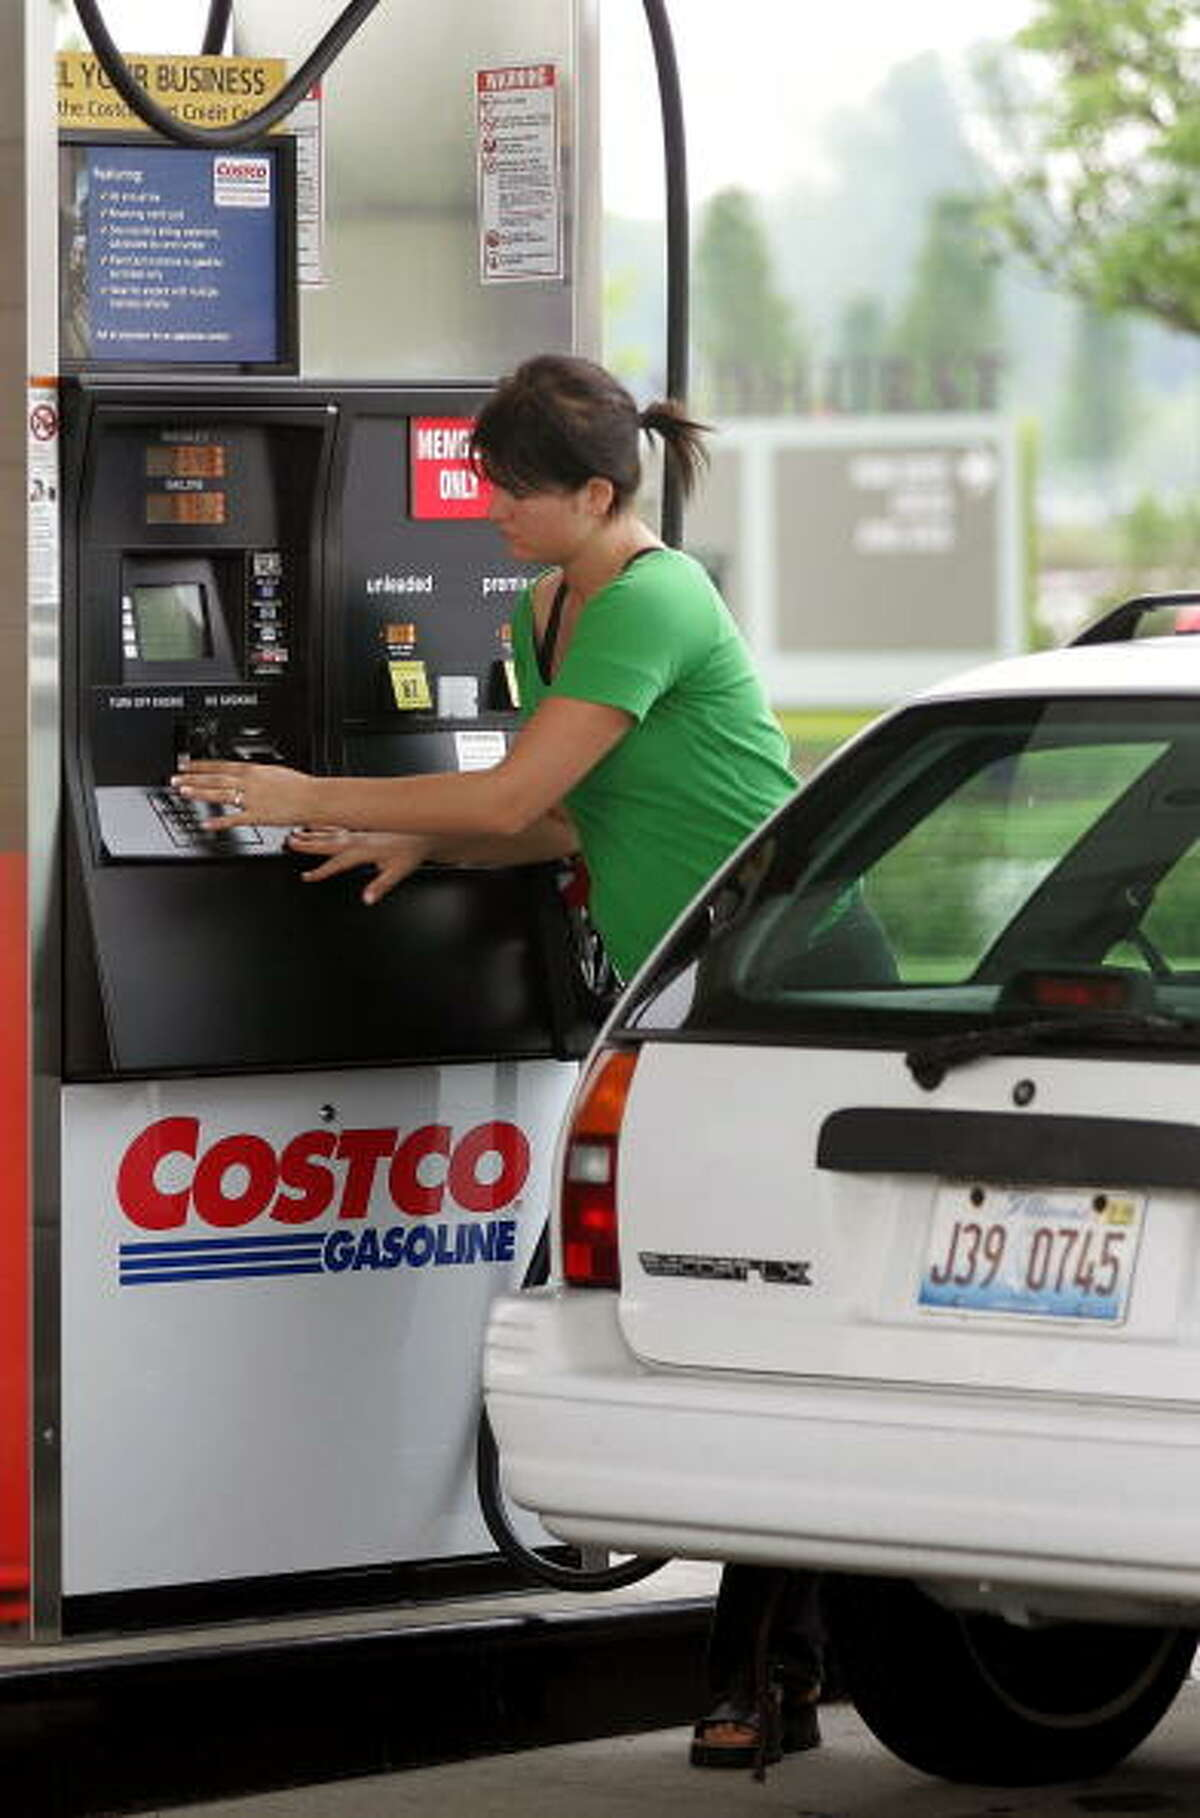 Love: Costco gas. Some surveys have shown the retailer to be America's favorite gas station.